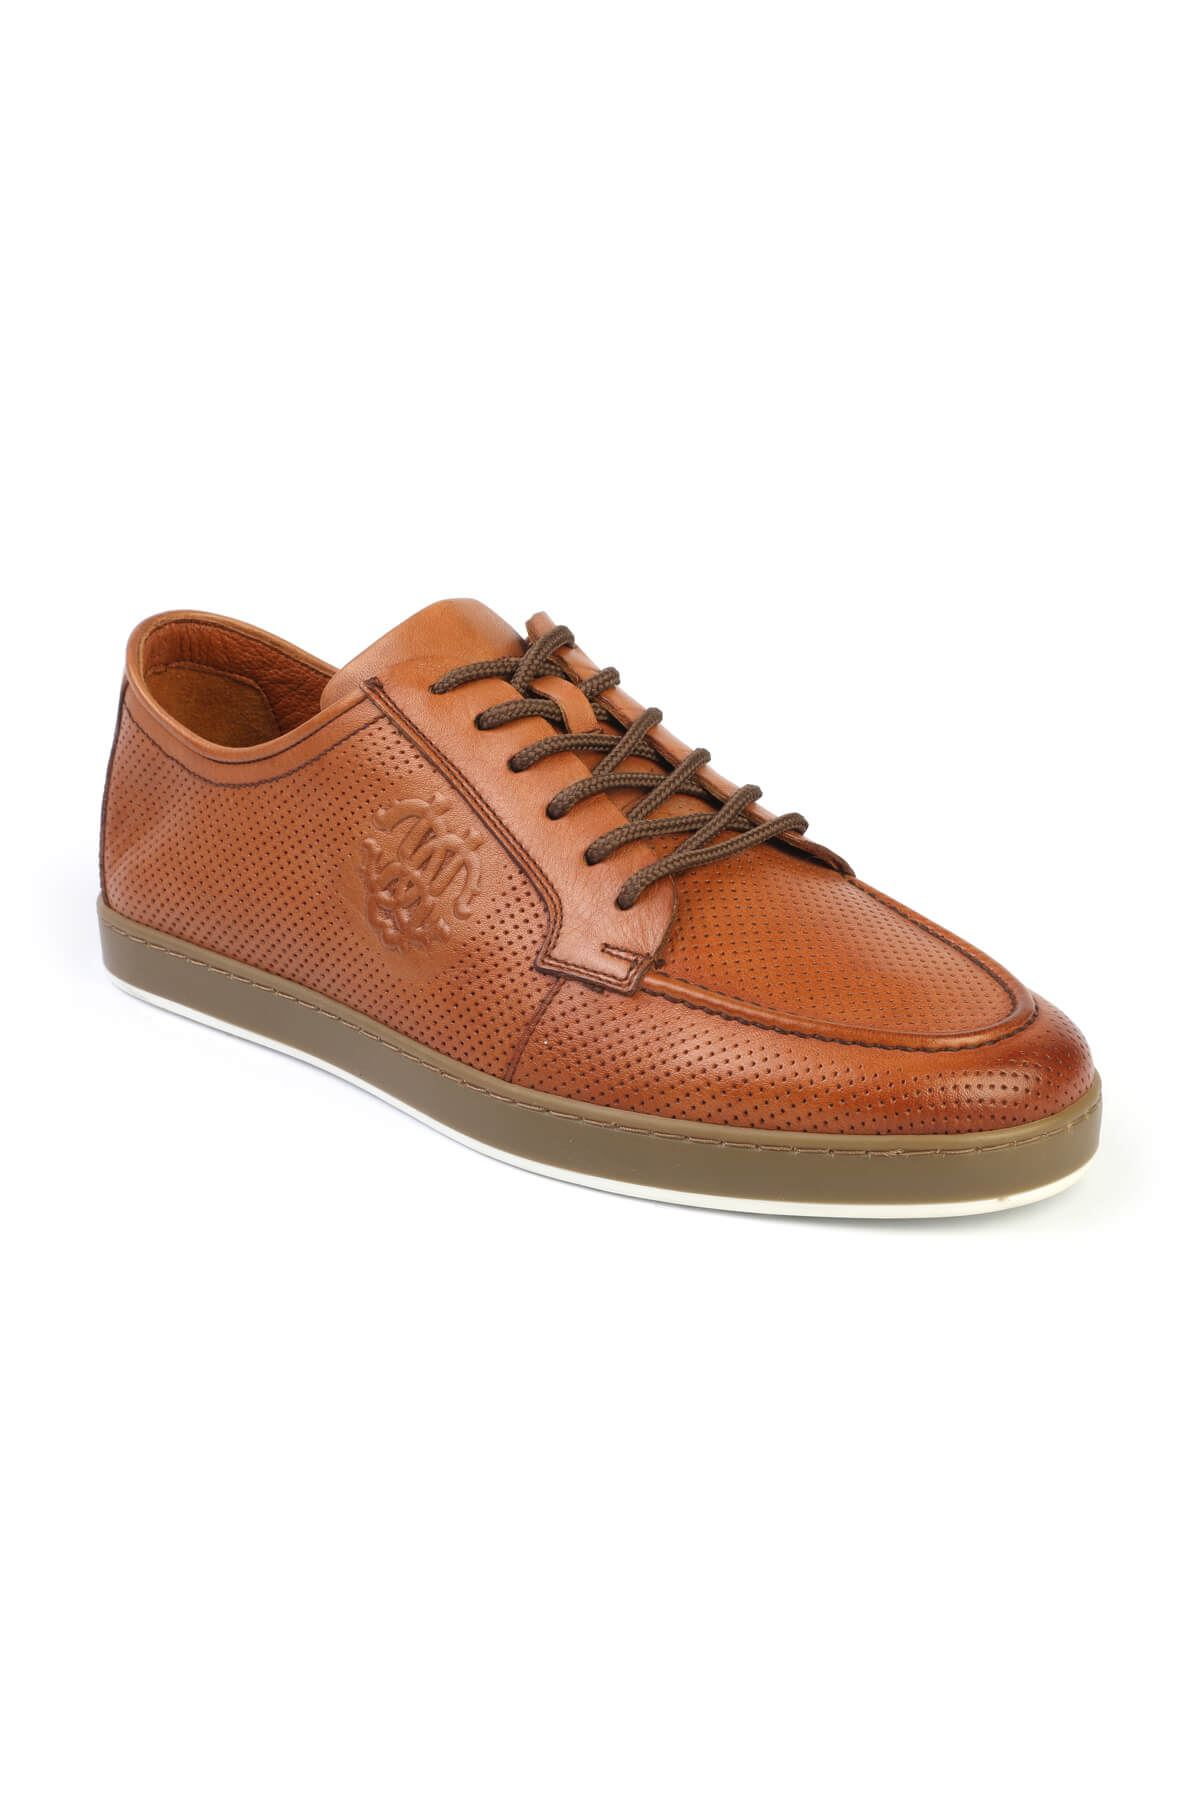 Libero 3200 Brown Sneaker Shoes